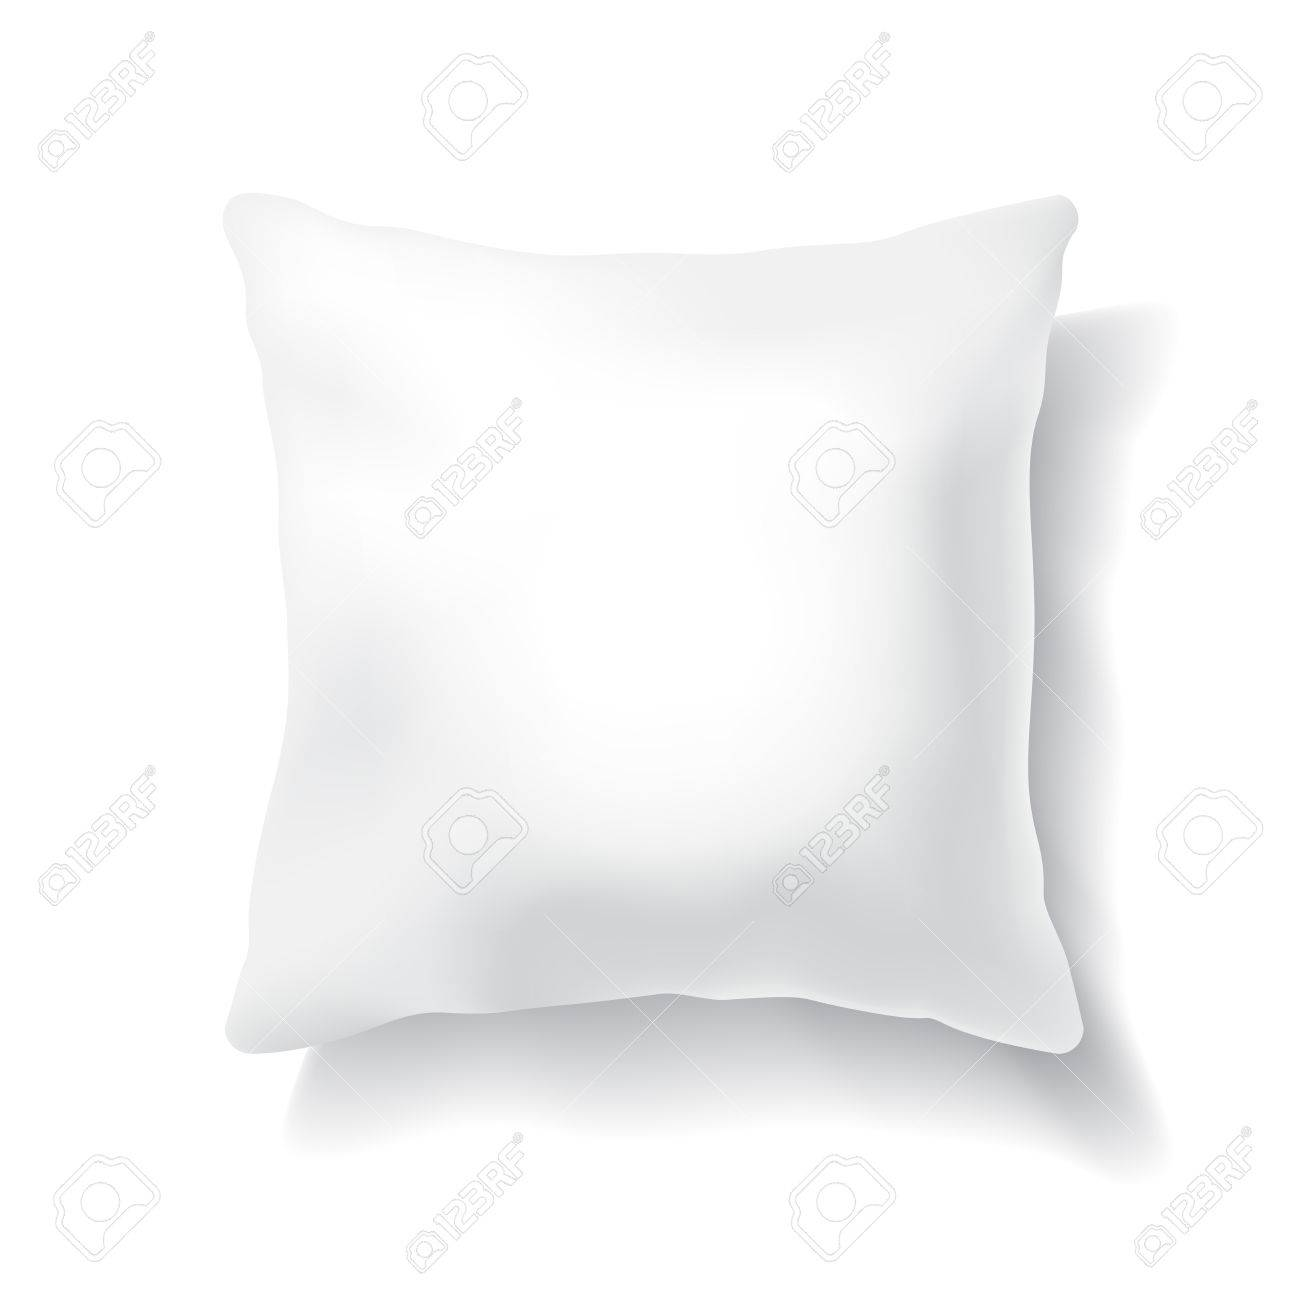 blank white square pillow isolated on white background design